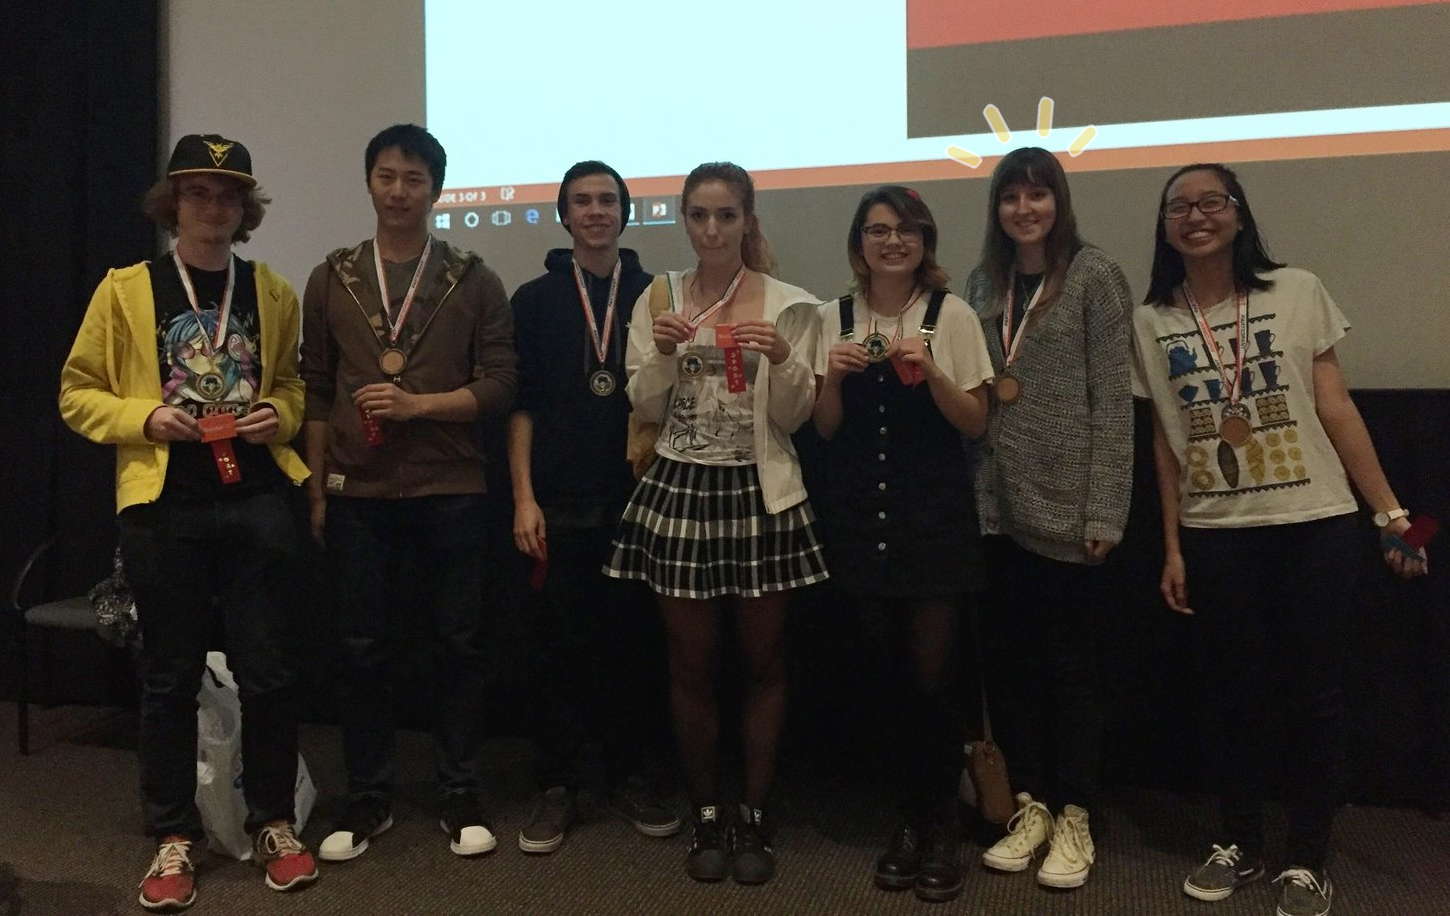 The team celebrating our win at a 2016 Sheridan College game jam!